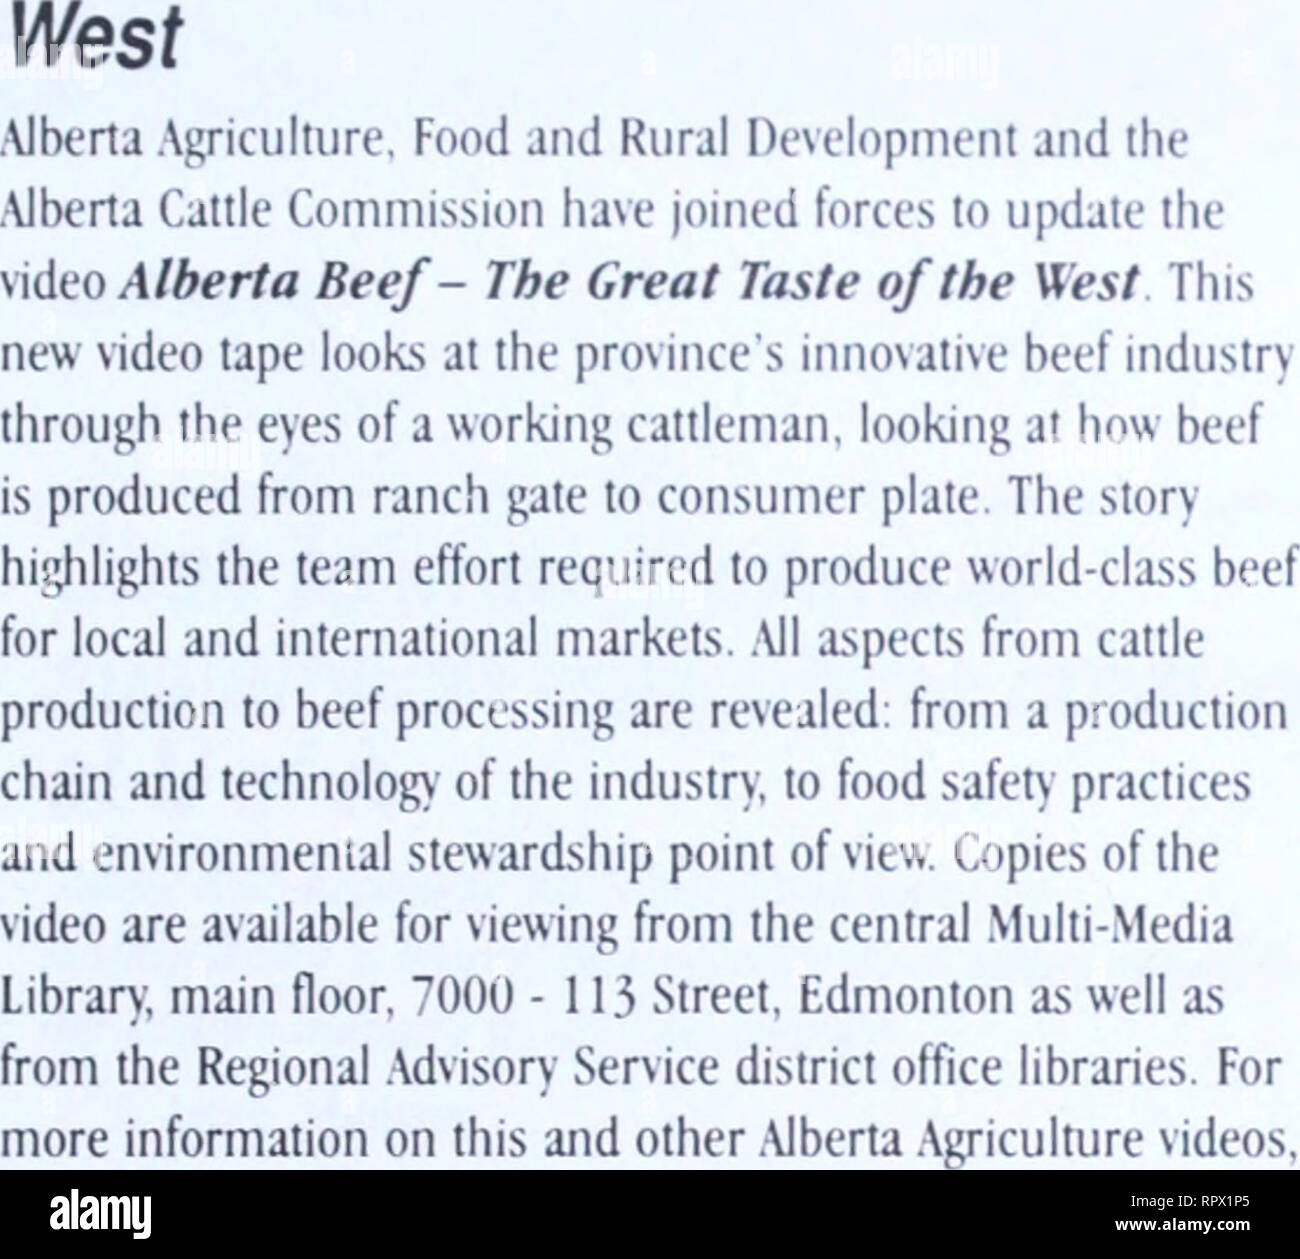 . Agri-news. Agriculture. April 17, 2000-page 5 Agri-News Briefs Alberta Beef: The Great Taste of the NAWMP contact Ken Blackley, information officer, Multi-Media Branch. Communications Division, 7000-113 street, Edmonton, AB T6H 5T6. Blackley can also be contacted by phone at (780) 422-3951, or fax (780) 427-2861, or e-mail . Alberta government phone numbers are toll free in the province by dialling 310-0000 first. The Bashaw Ag Society is hosting the Rural Alberta Showcase on April 14 and 15, 2000. A workshop, Alberta Small Sparks...How to Make a Serious Difference in the World Without Takin - Stock Image